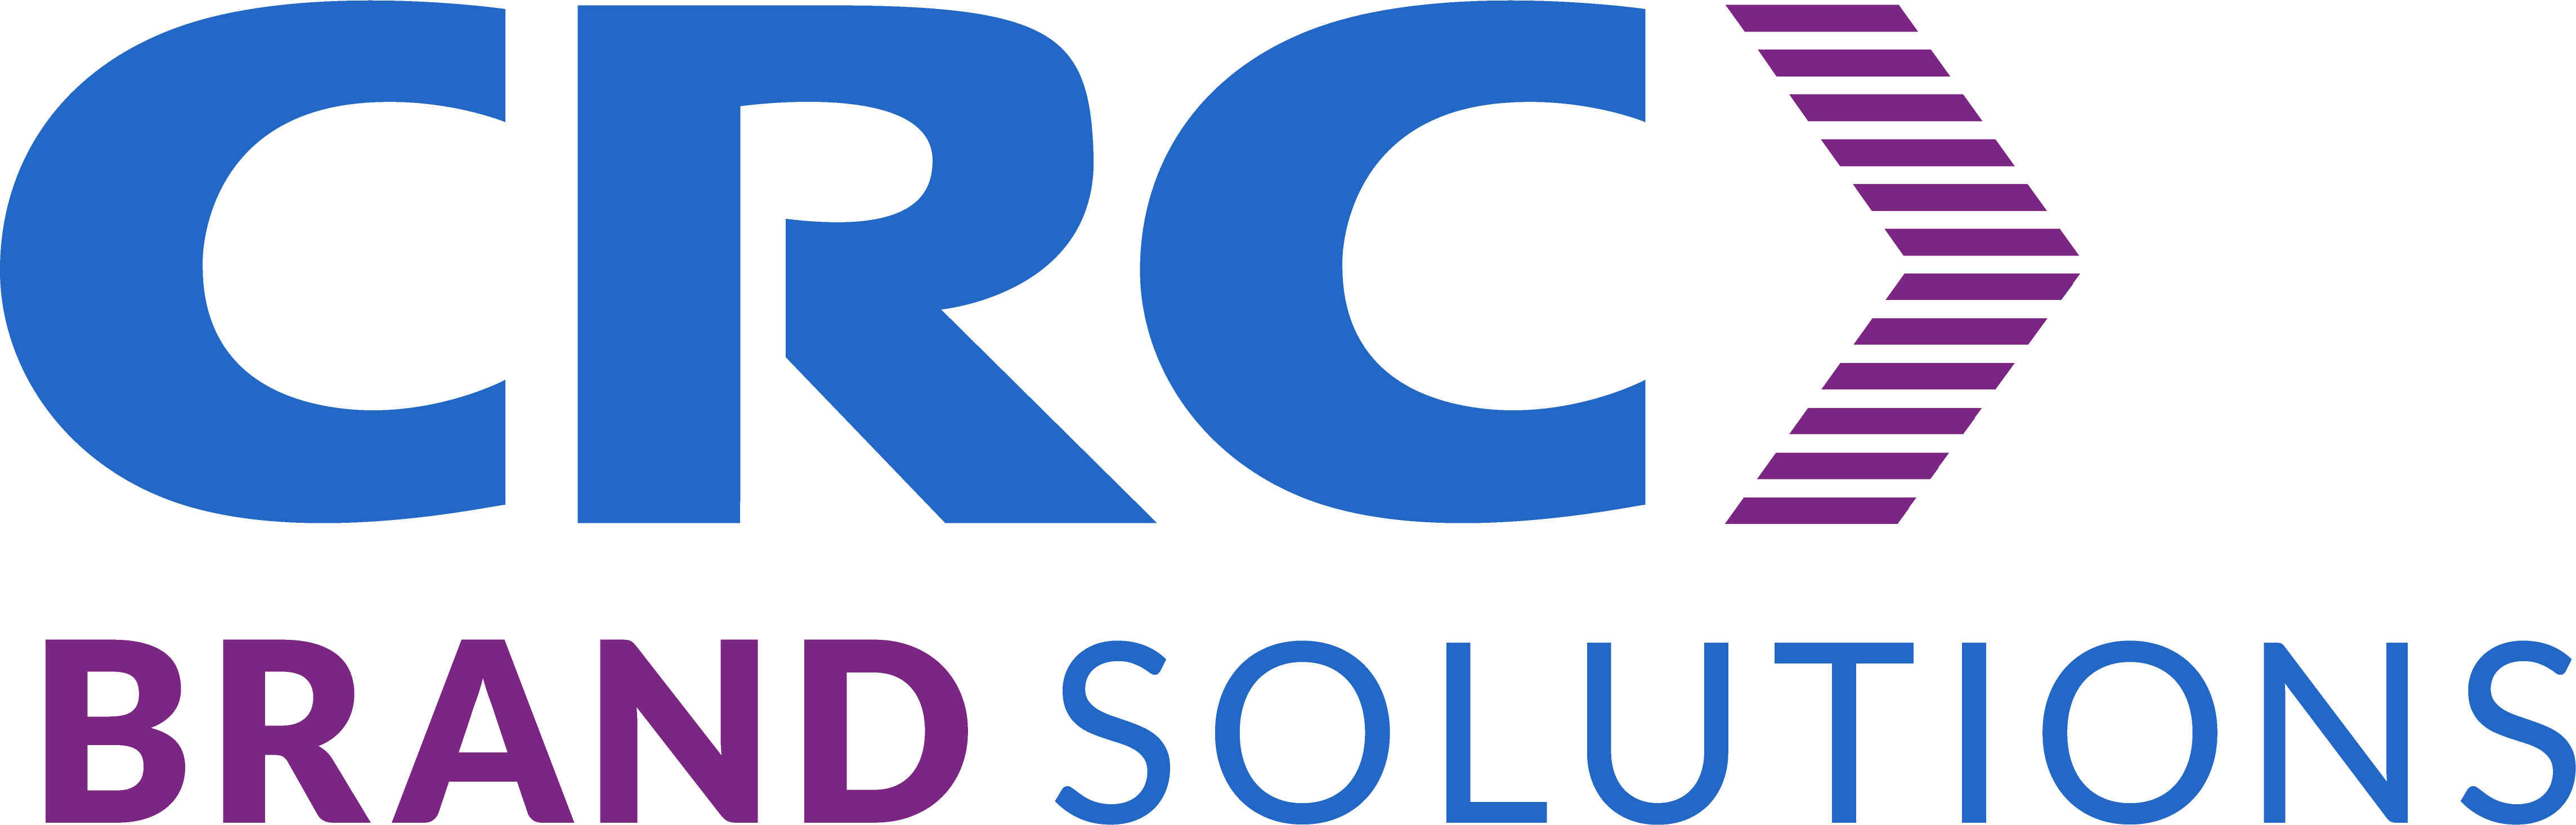 CRC Brand Solutions